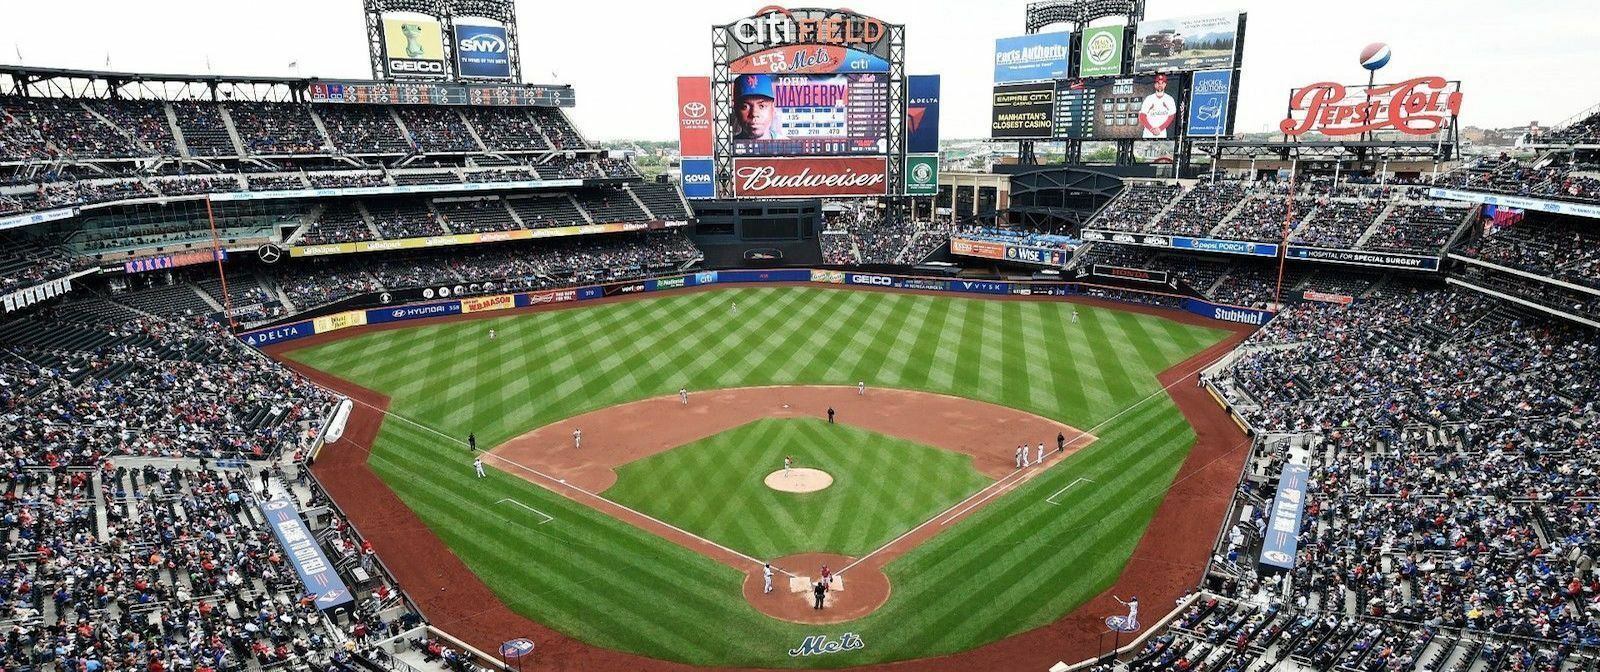 New York Mets Parking Pes for Events - Stubhub Citi Field Parking Map on